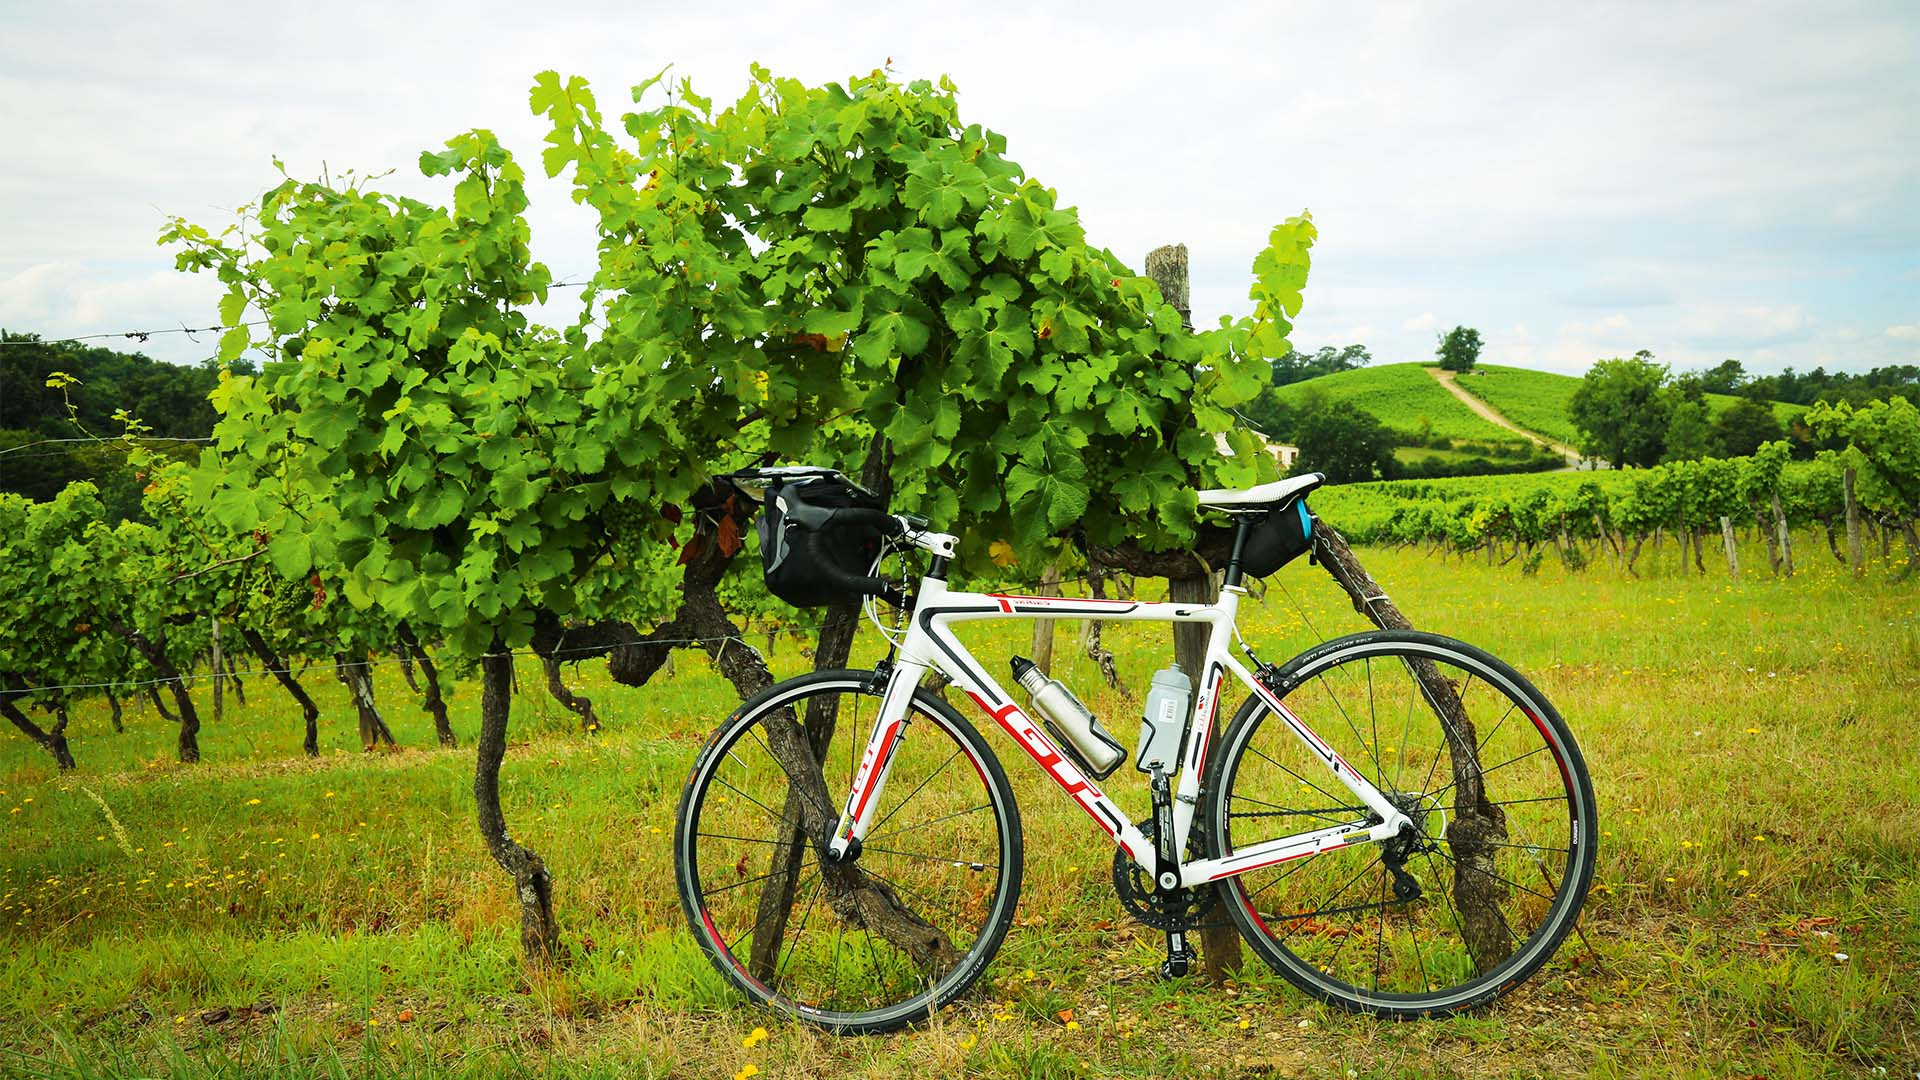 Bike parked in a vineyard, Bordeaux, France